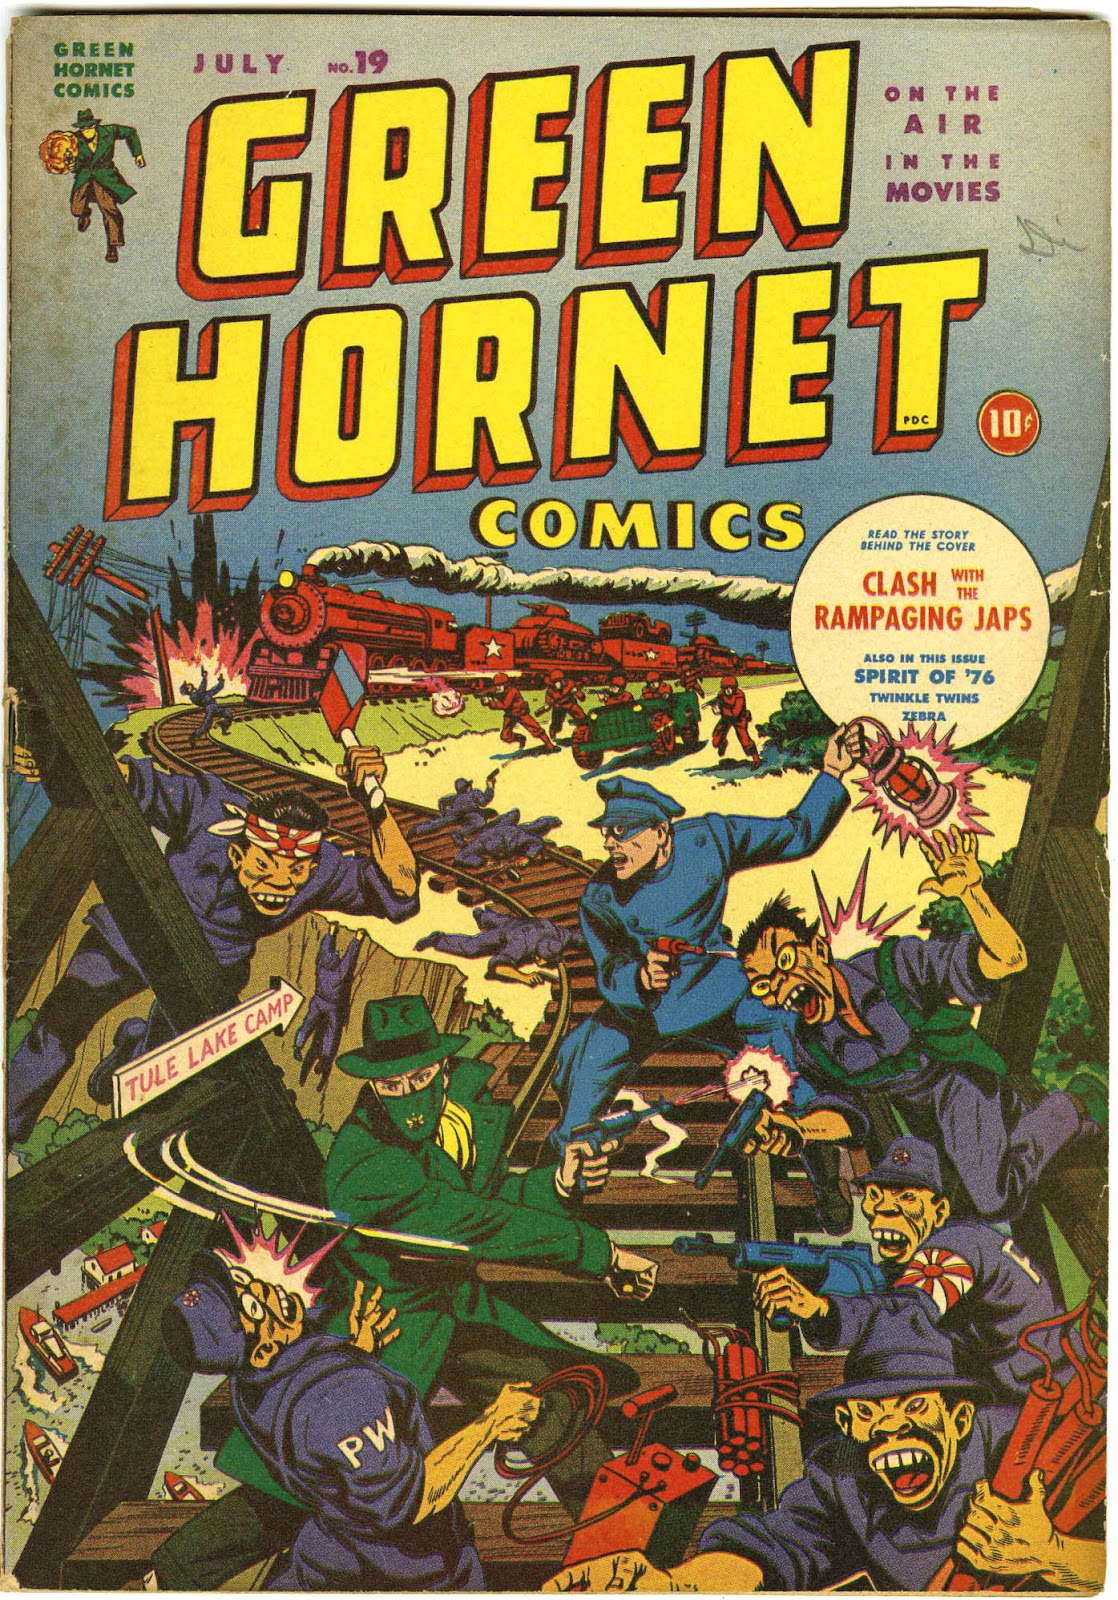 Green Hornet Comics issue 19 - Page 1